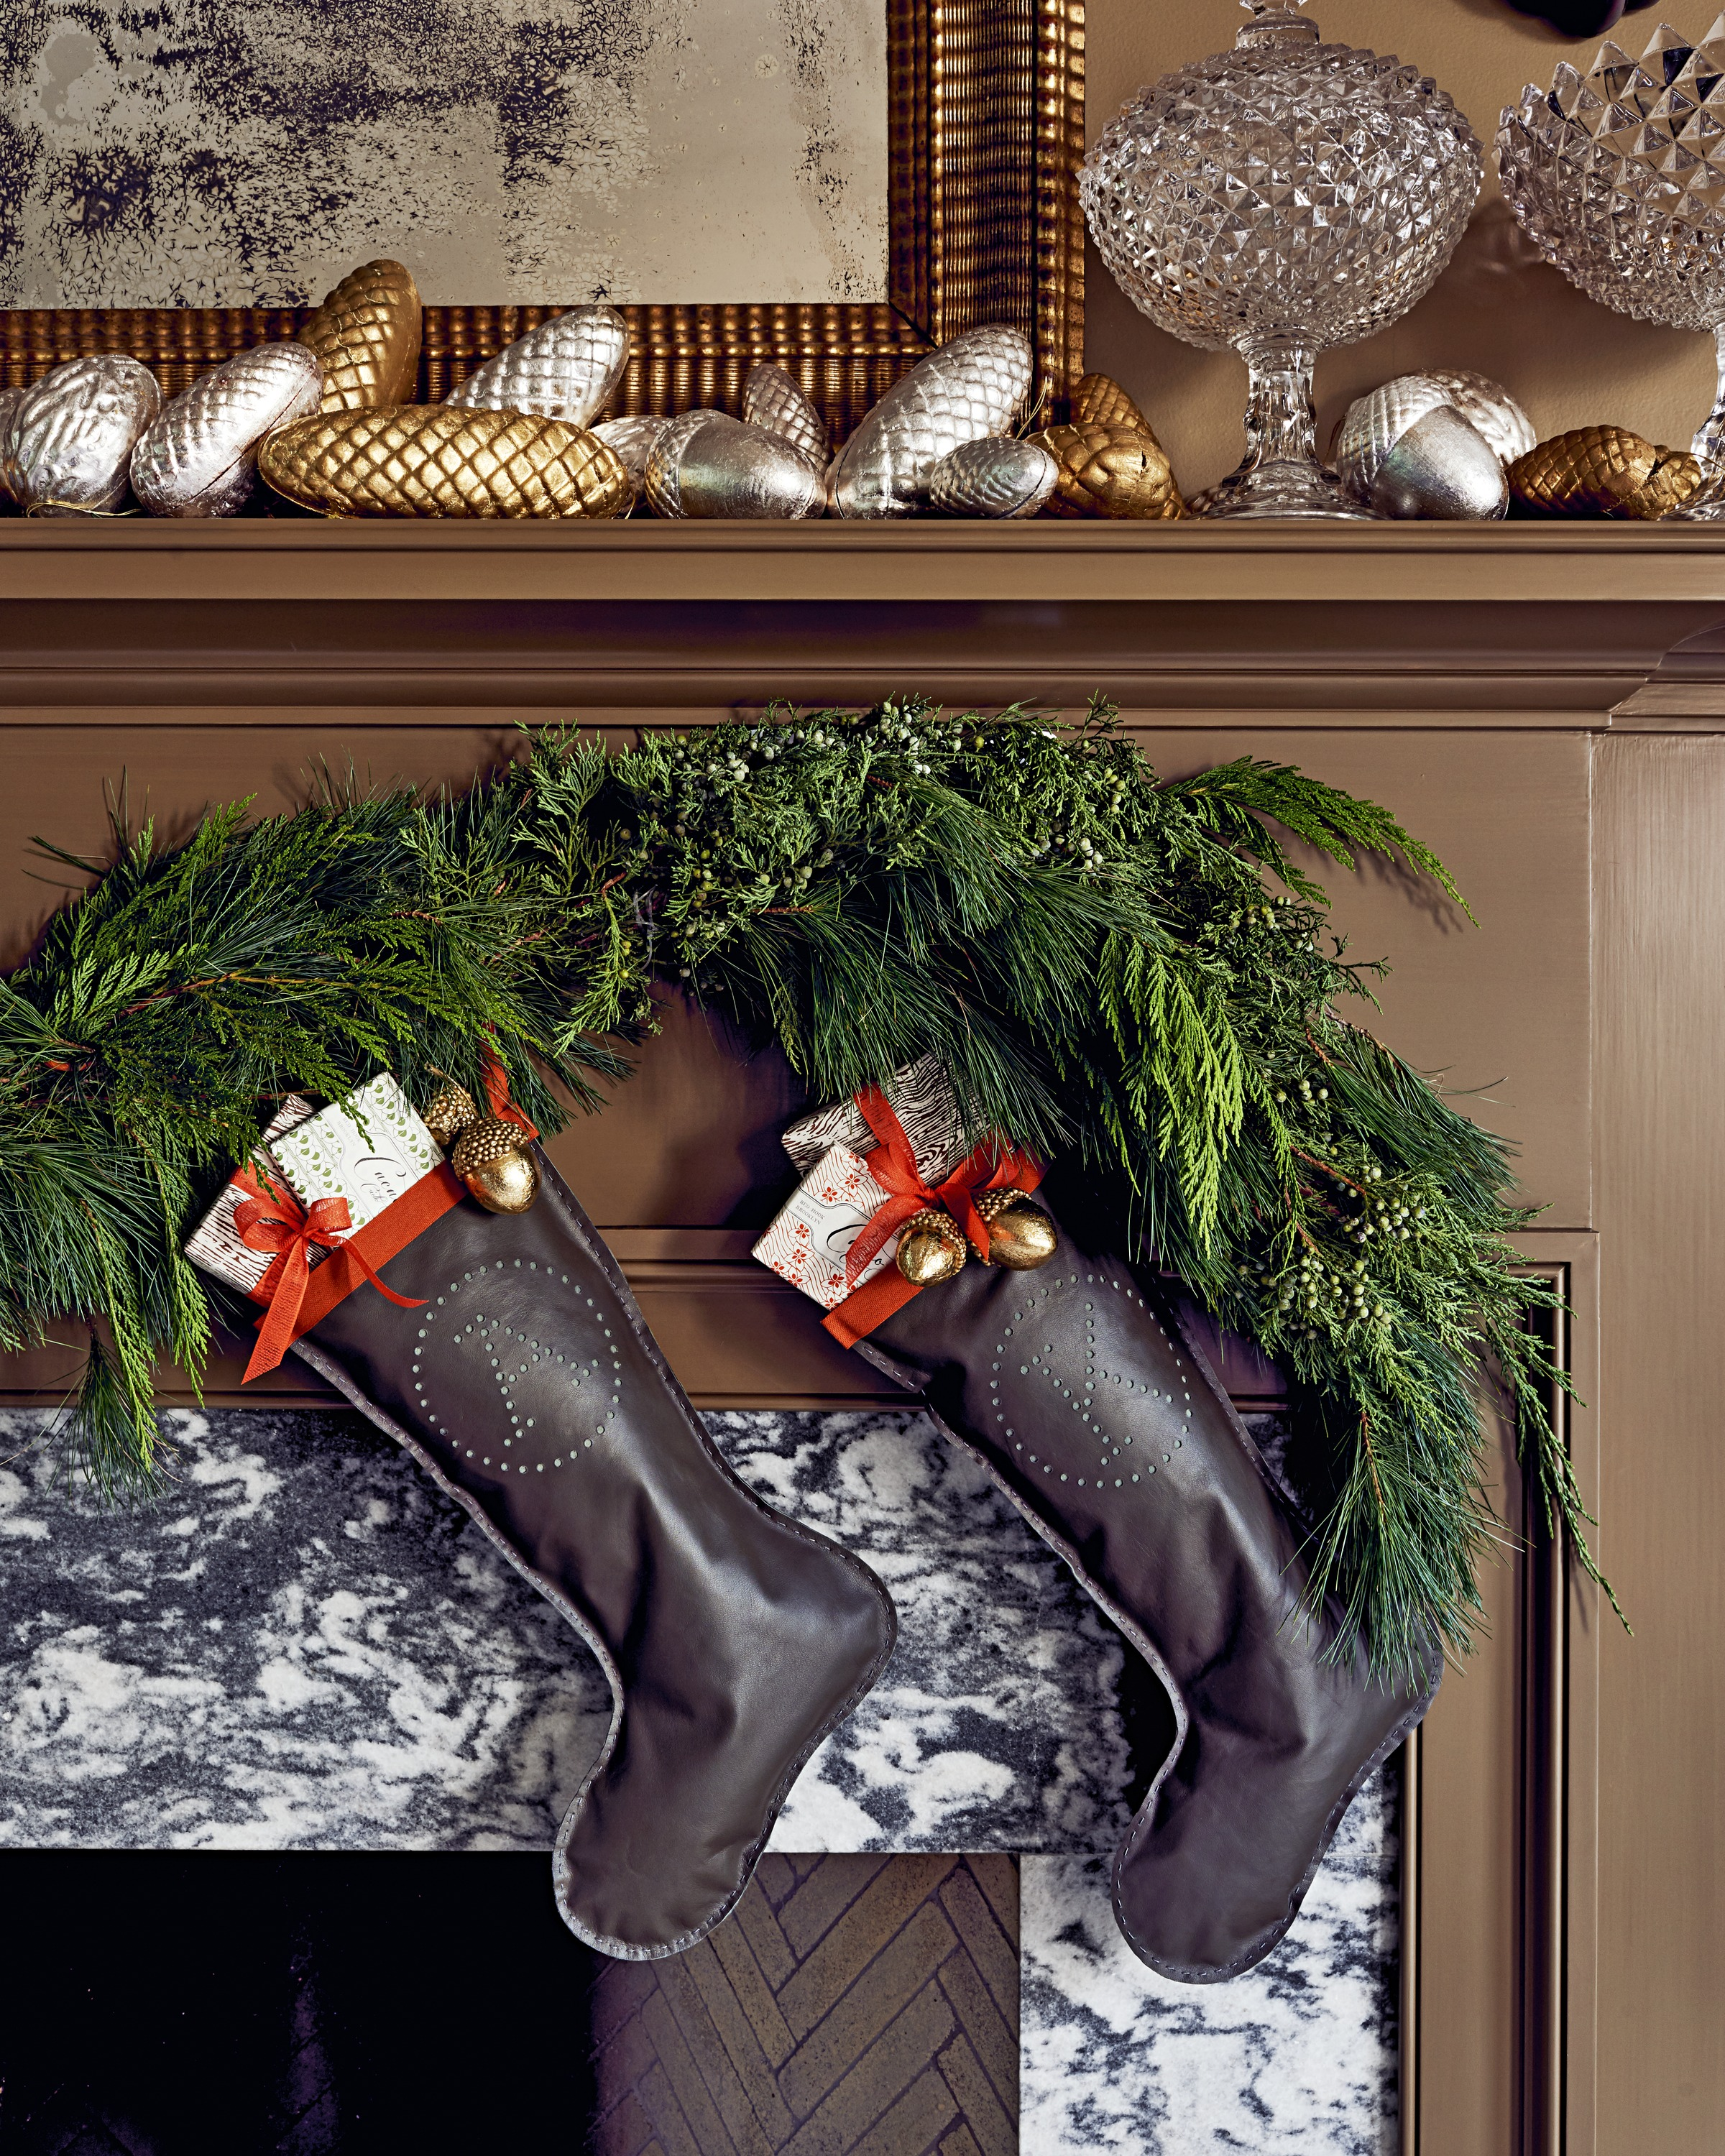 leather stockings on mantle